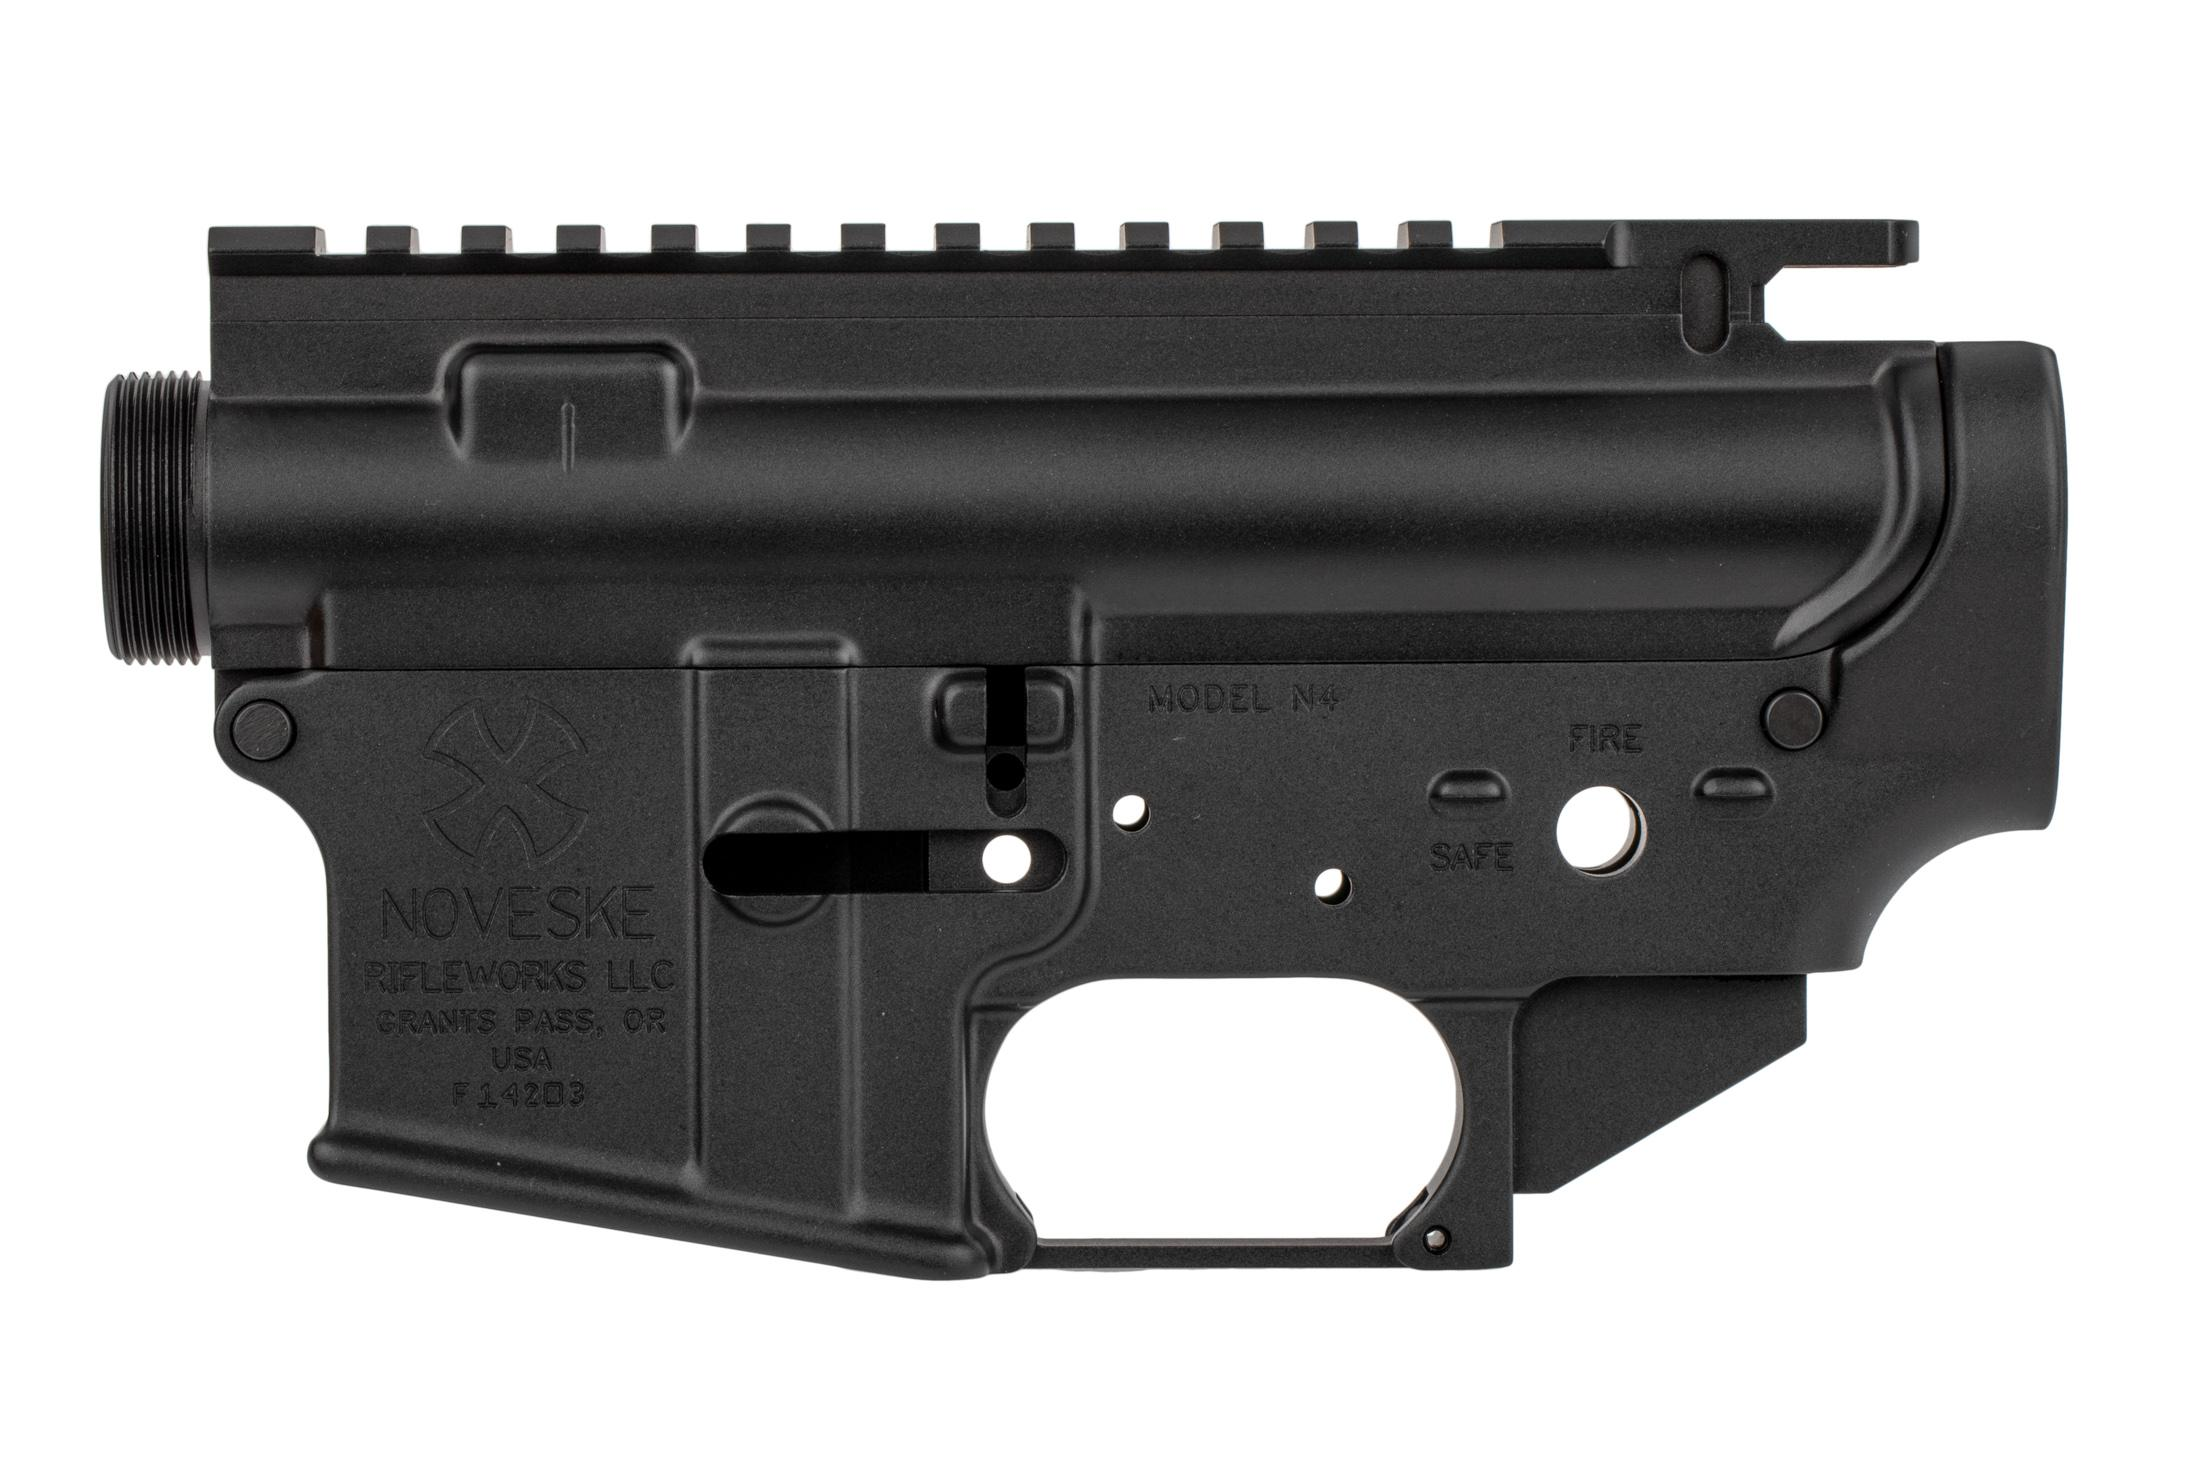 The Noveske N4 AR15 matched receiver set is compatible with MilSpec parts